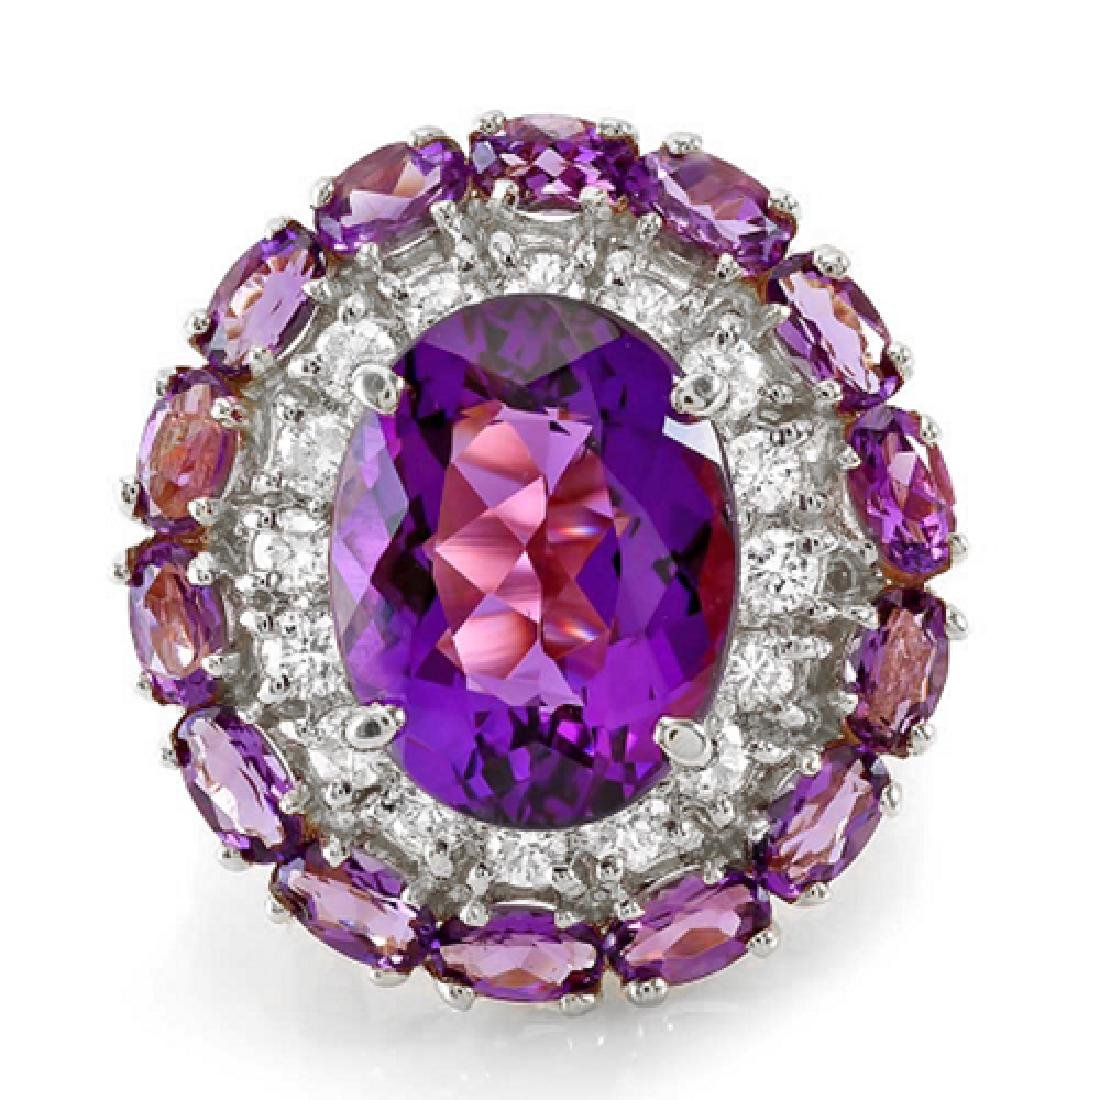 16.07 Carat Natural Amethyst 18K Solid White Gold